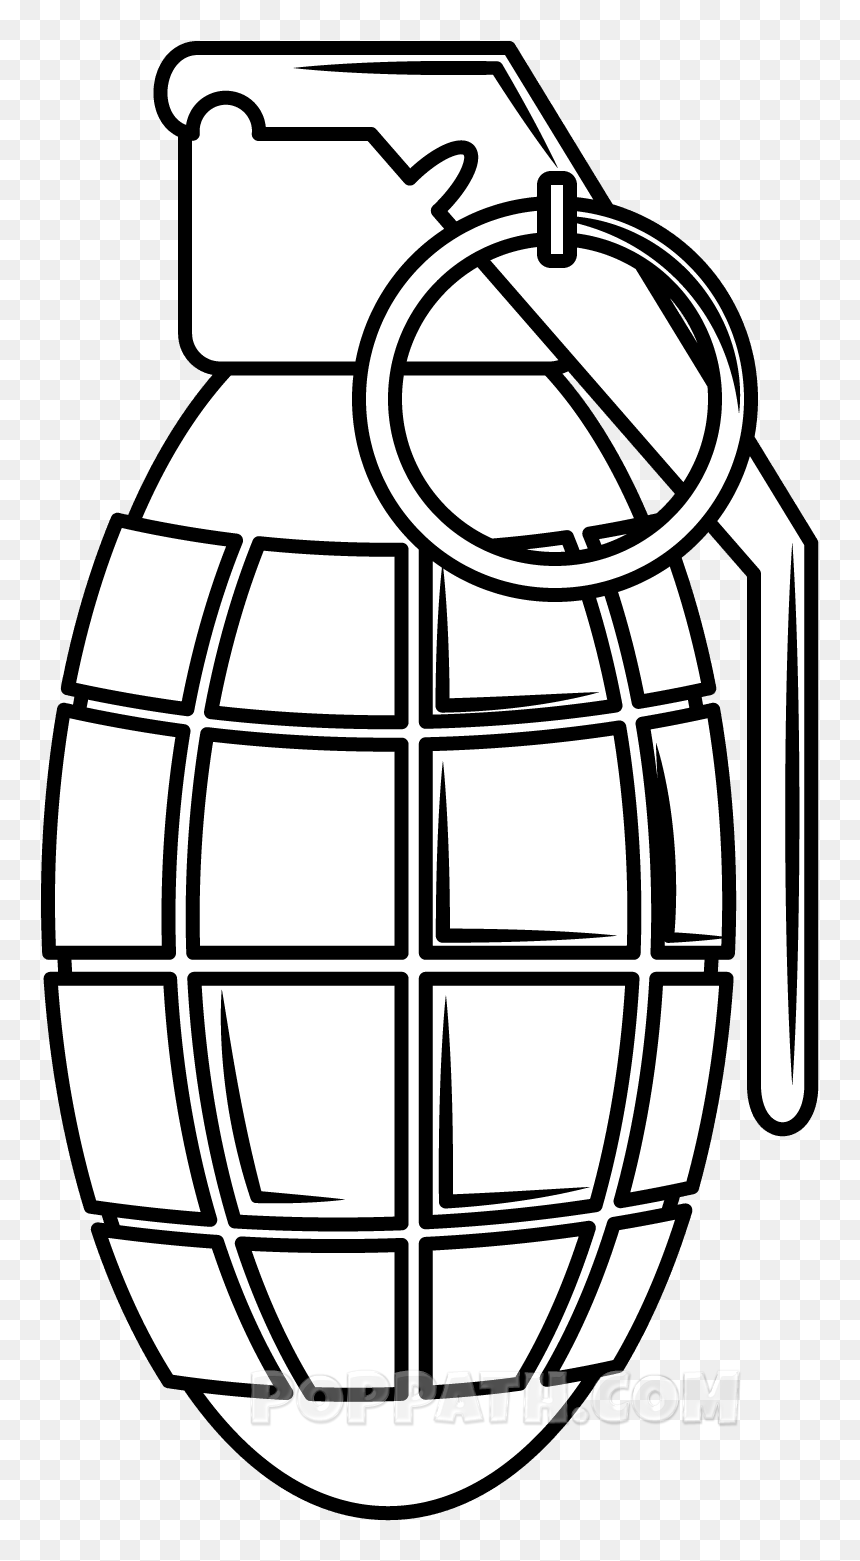 clip art grenade drawing free fire bomb drawing hd png download vhv free fire bomb drawing hd png download